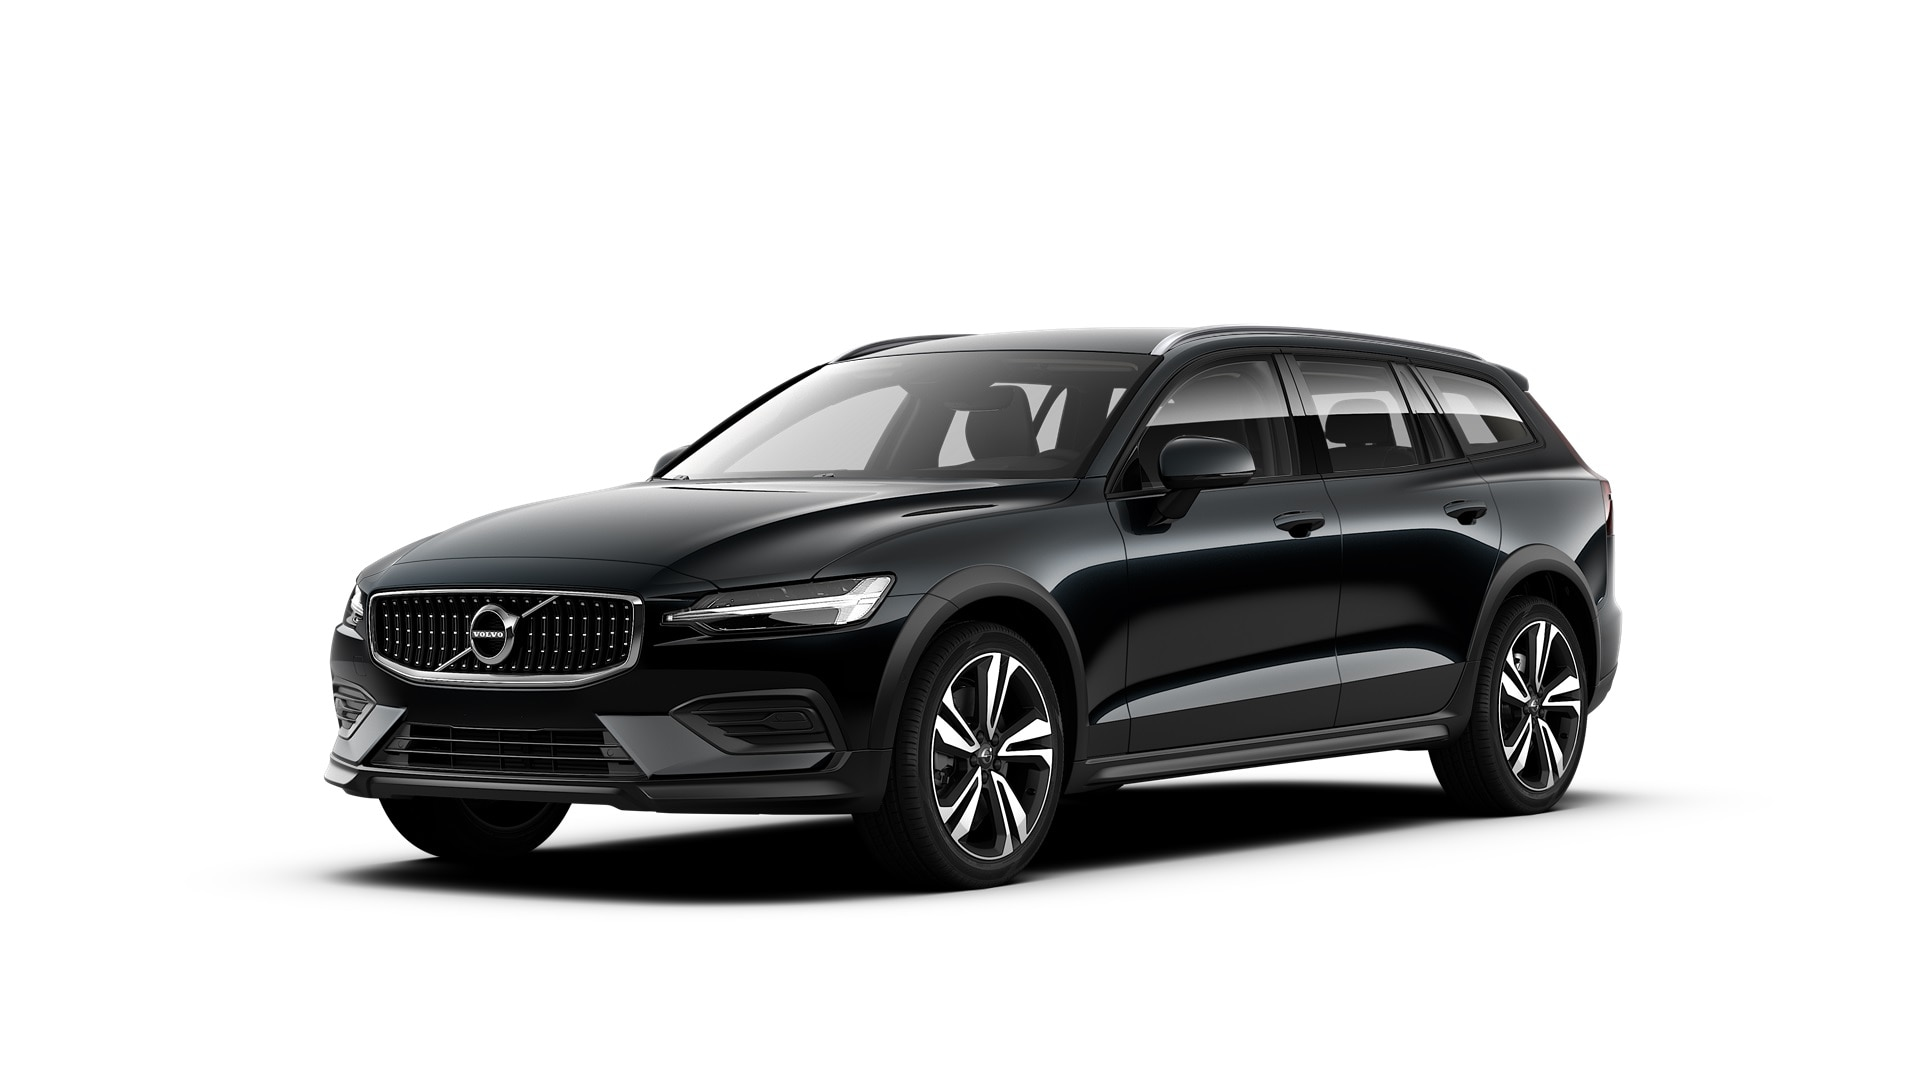 2021 Volvo V60 Cross Country Price and Review